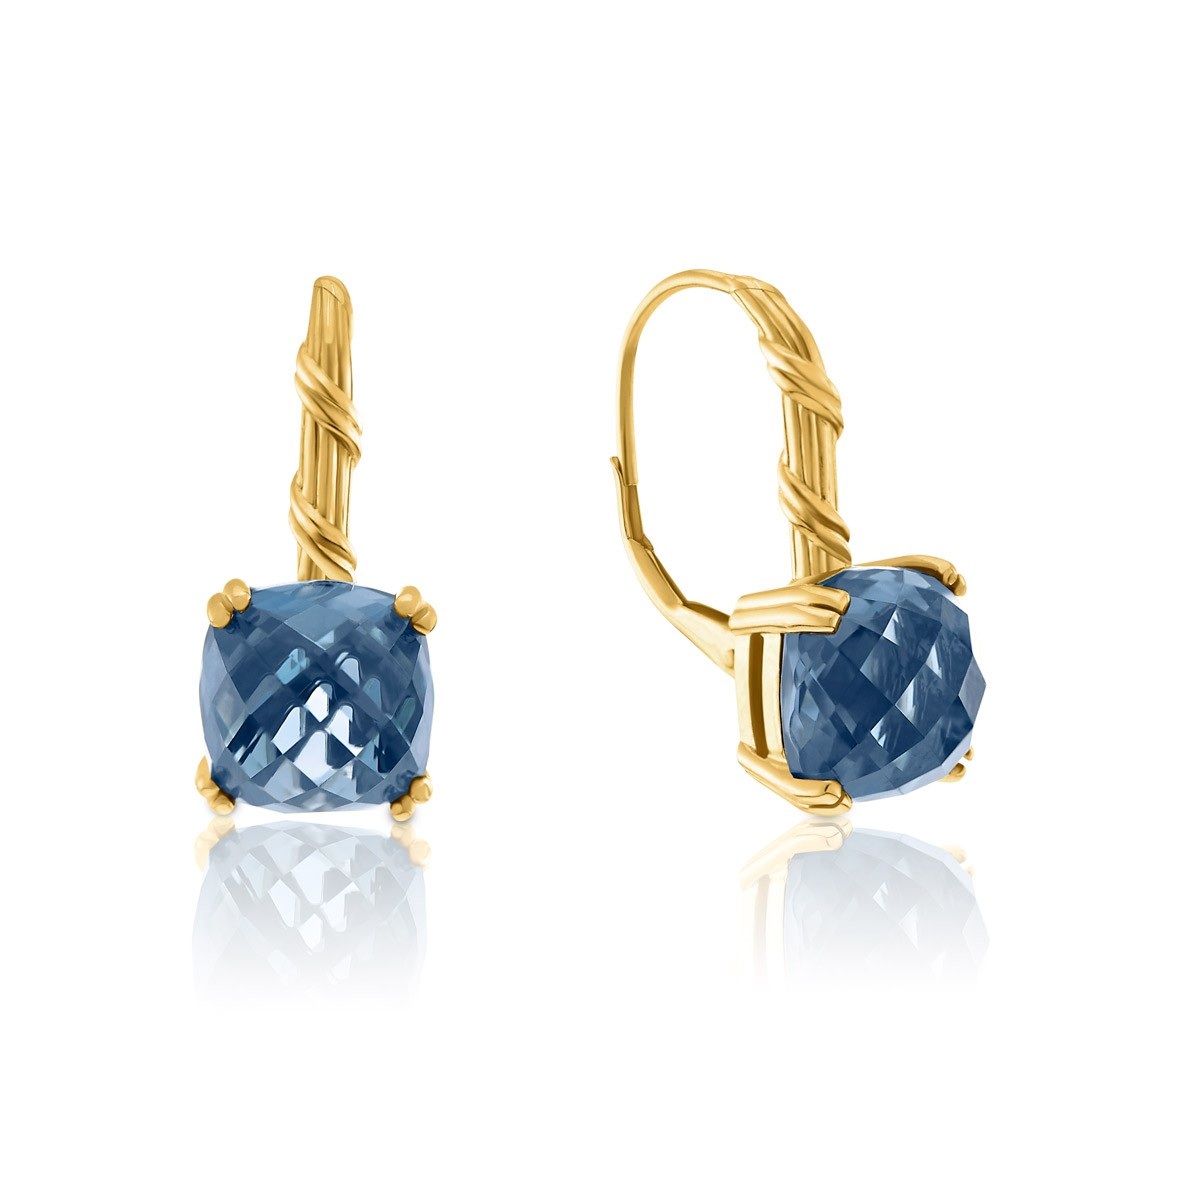 Peter Thomas Roth Ribbon And Reed London Blue Topaz Drop Earrings In 18k Yellow Gold